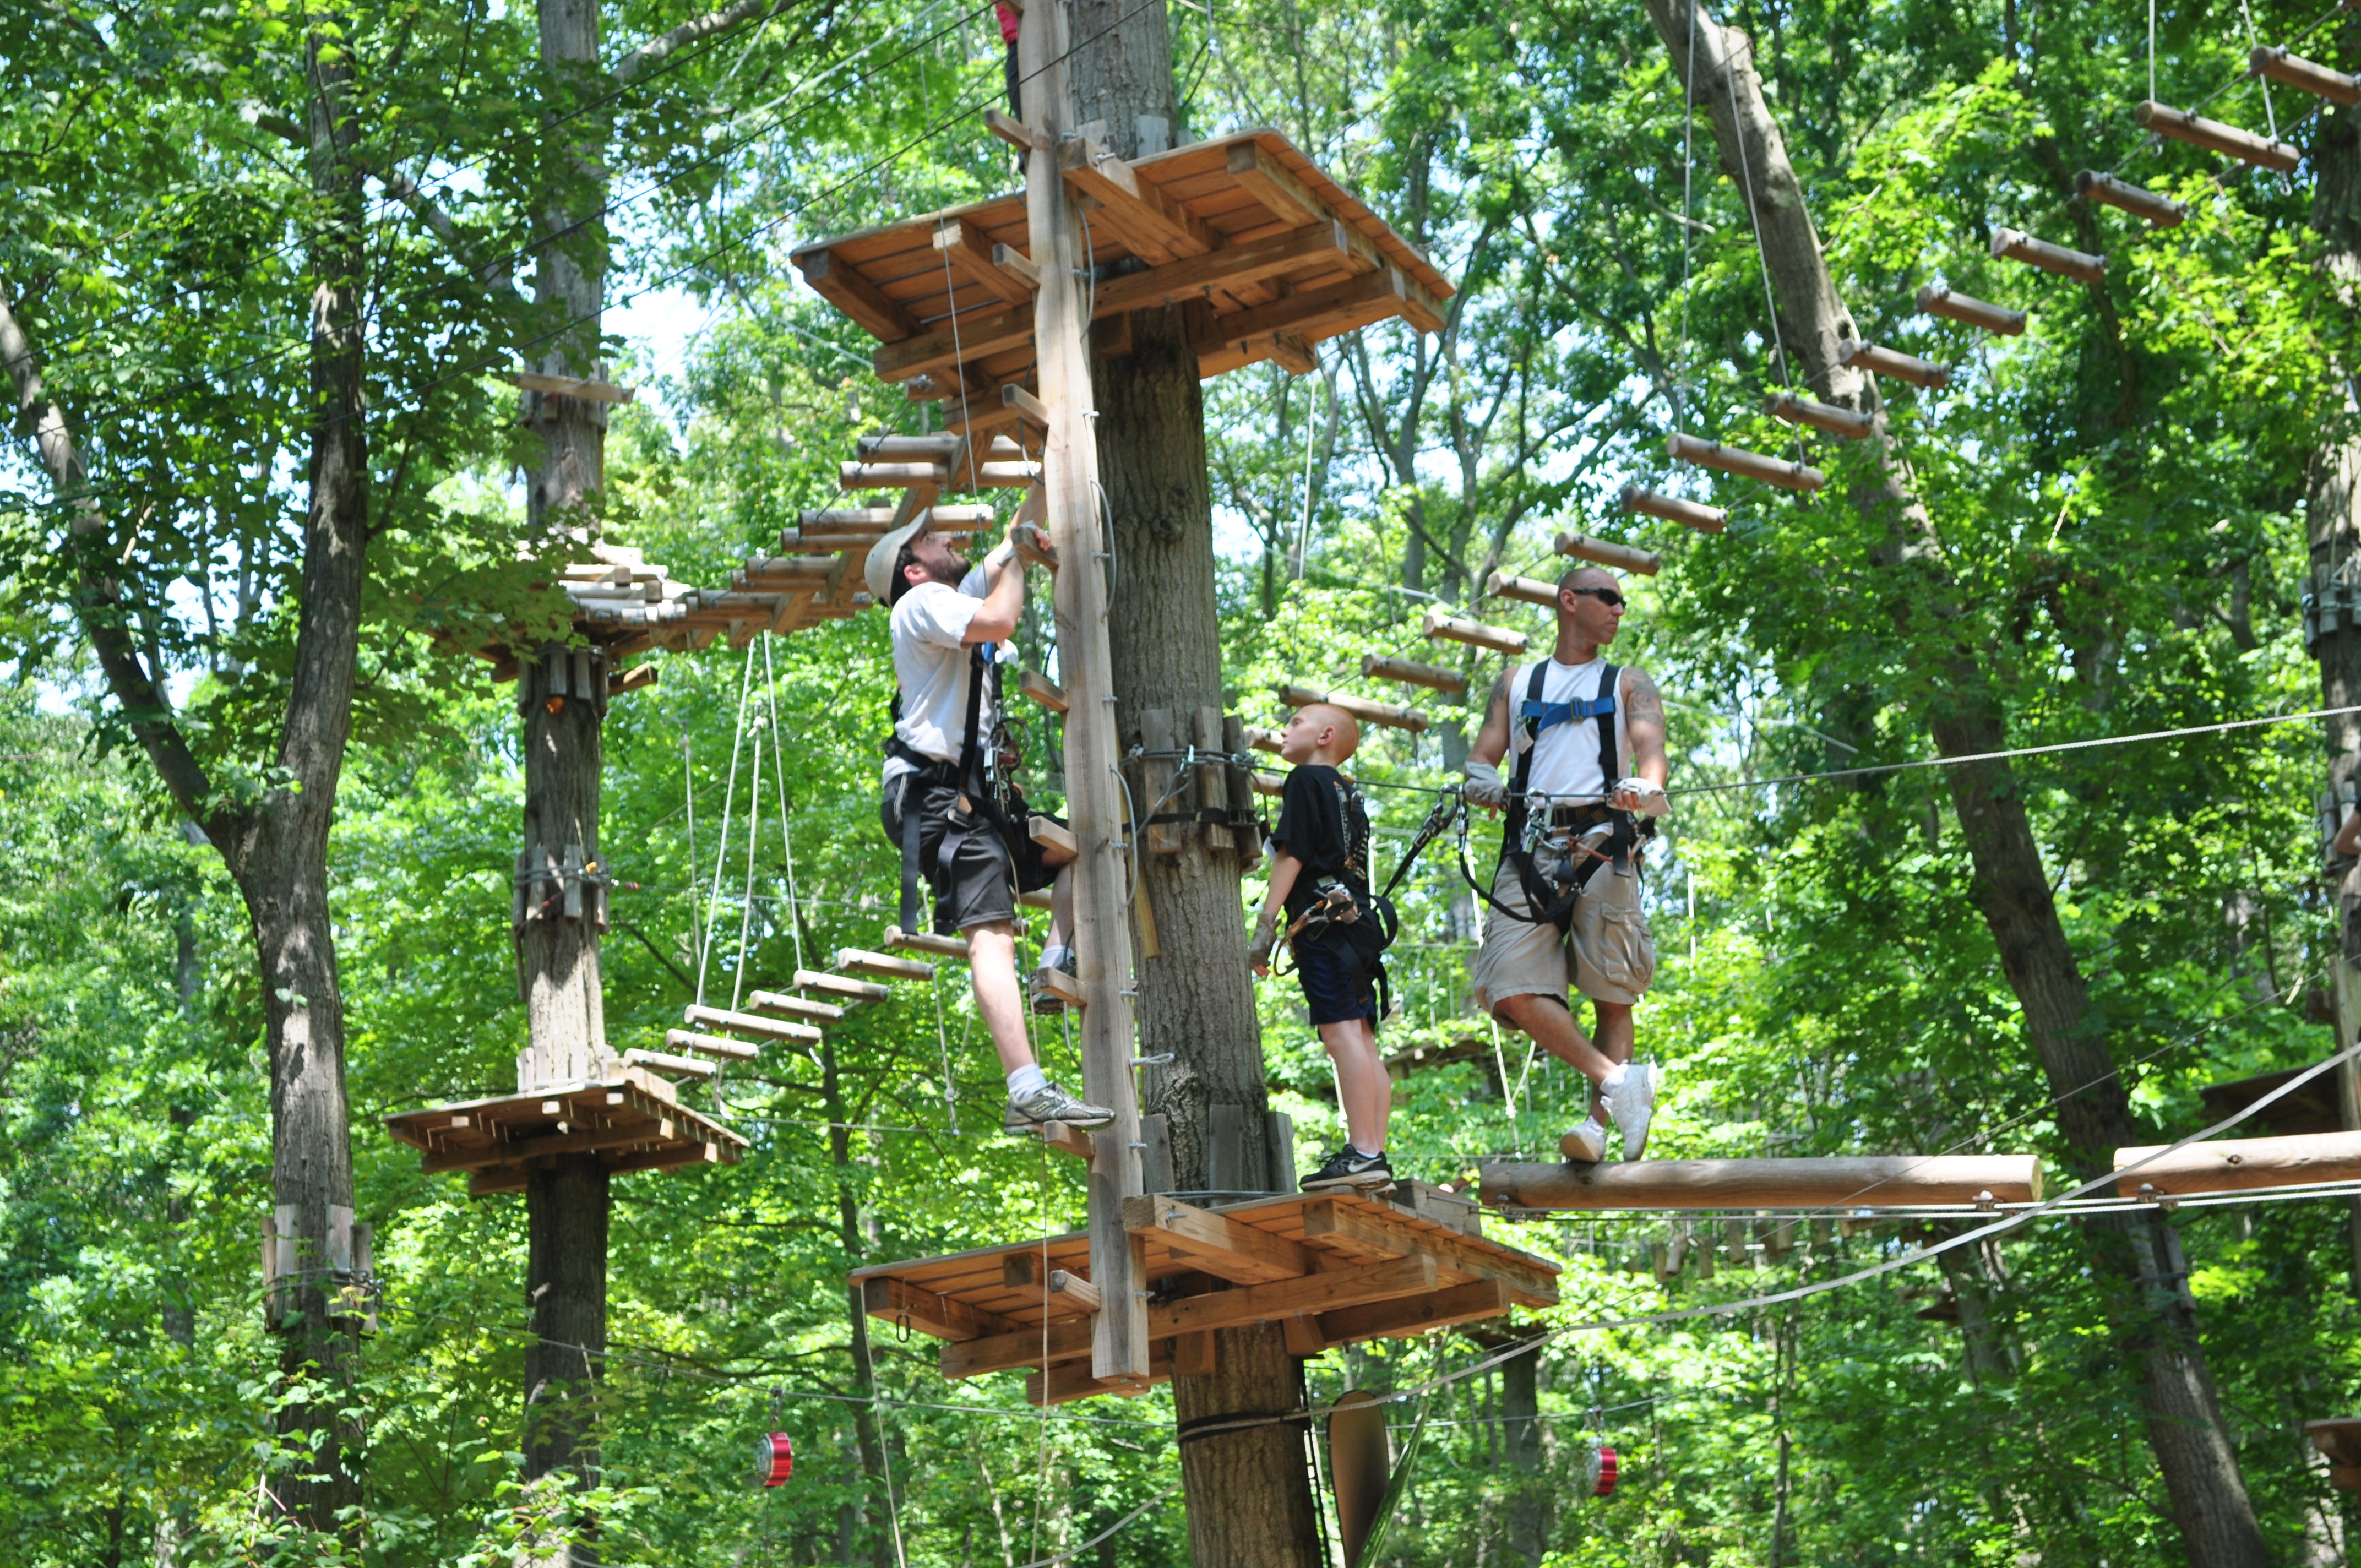 You Climb A Tree We Ll Plant A Tree Says The Adventure Park At Nashville For Arbor Day Weekend April 26 28 2019